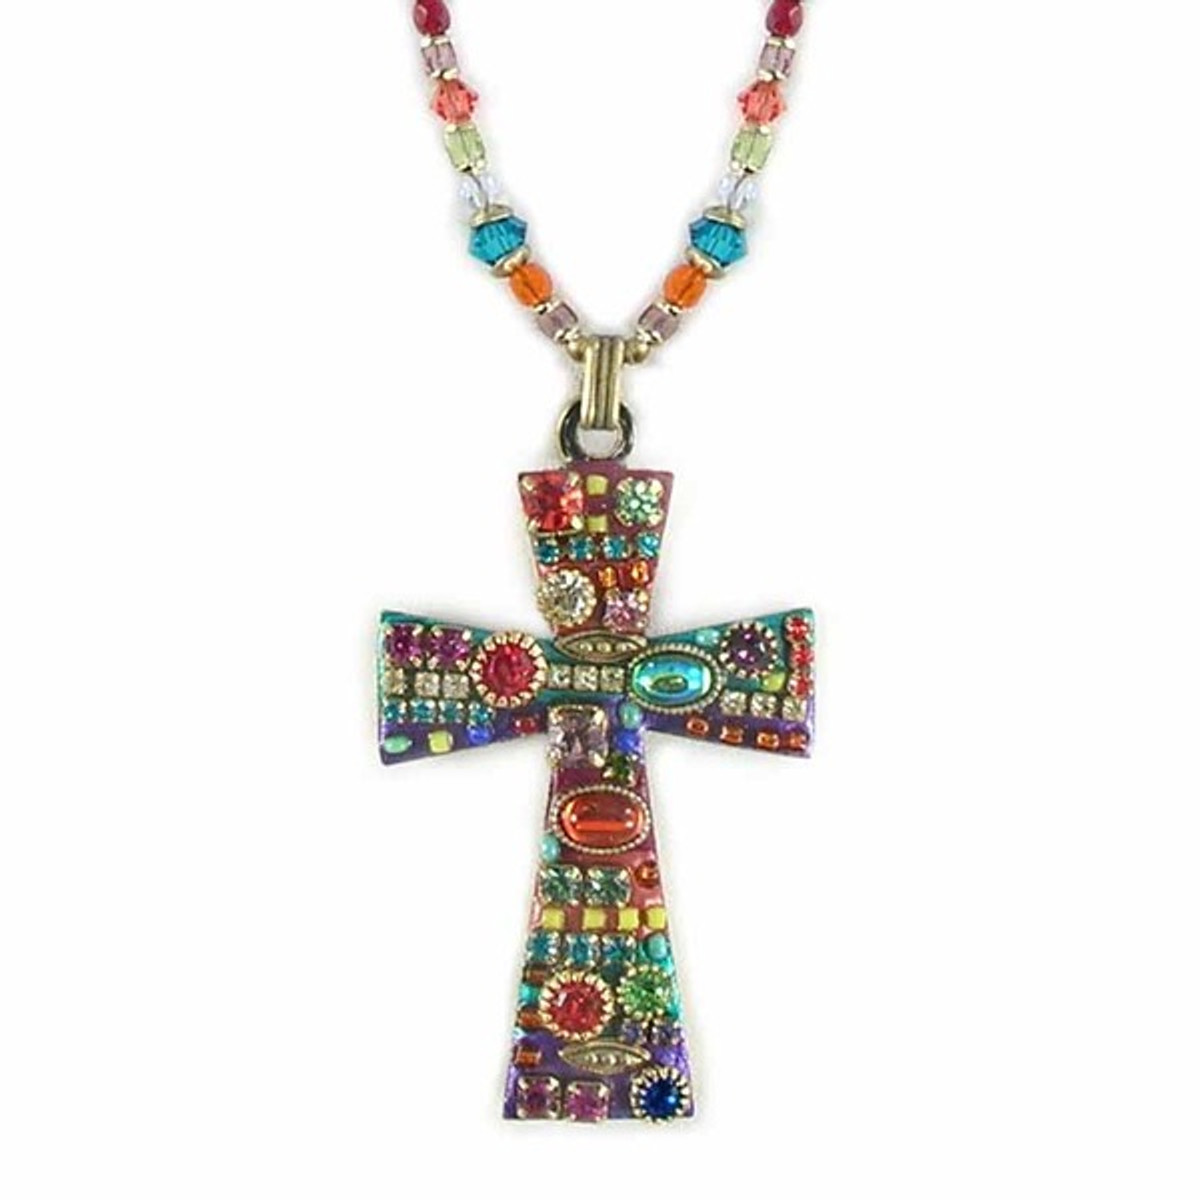 Michal Golan Multibright Cross Necklace